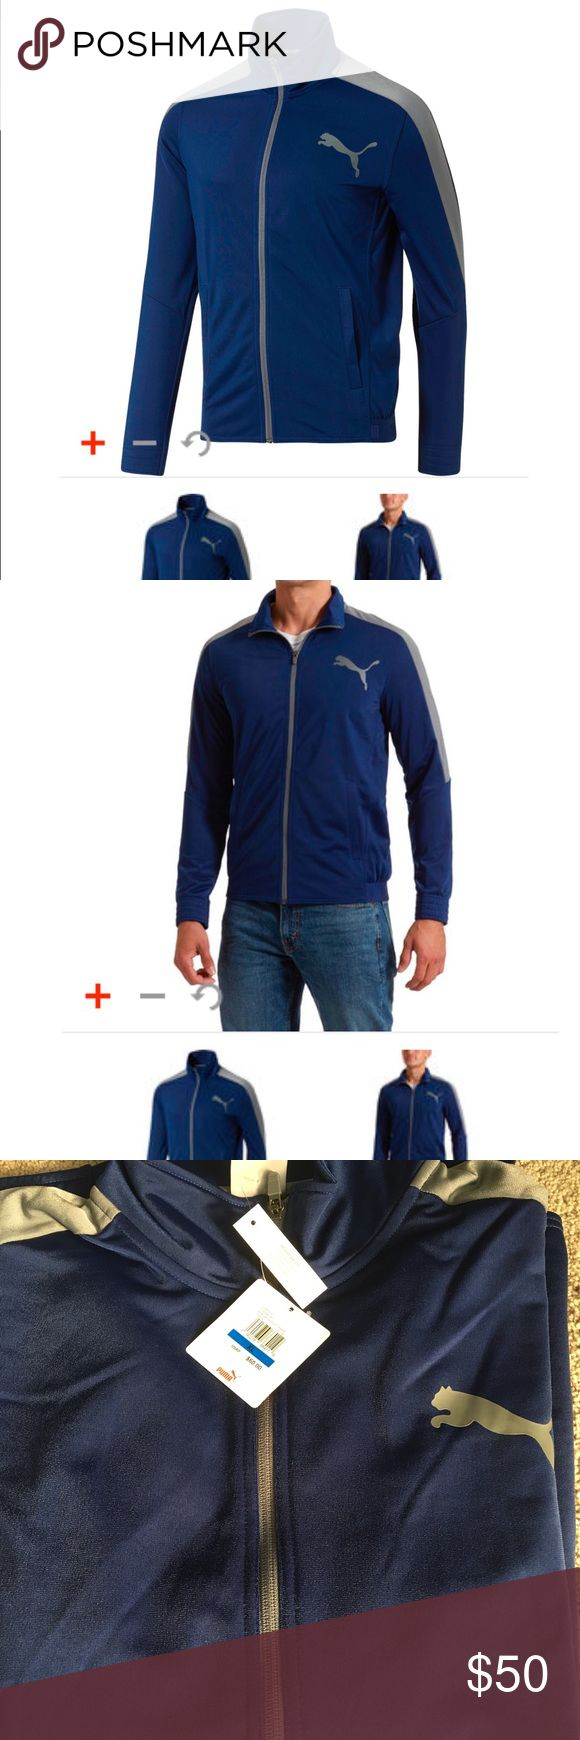 "CONTRAST TRACK JACKET If ""casual and cool"" describes you to a tee, this track jacket is your perfect match. The relaxed fit lets you layer without the bulk, while the sporty design means easy style when you're kicking back.  Features  100% Polyester Full zip closure Dual side pockets Contrast side panels PUMA Cat Logo at left chest Size & Fit  Model in ebony/PUMA black color wearing size M Model measurements: height 6'2"", waist 31"", inseam 32"" Puma Jackets & Coats"